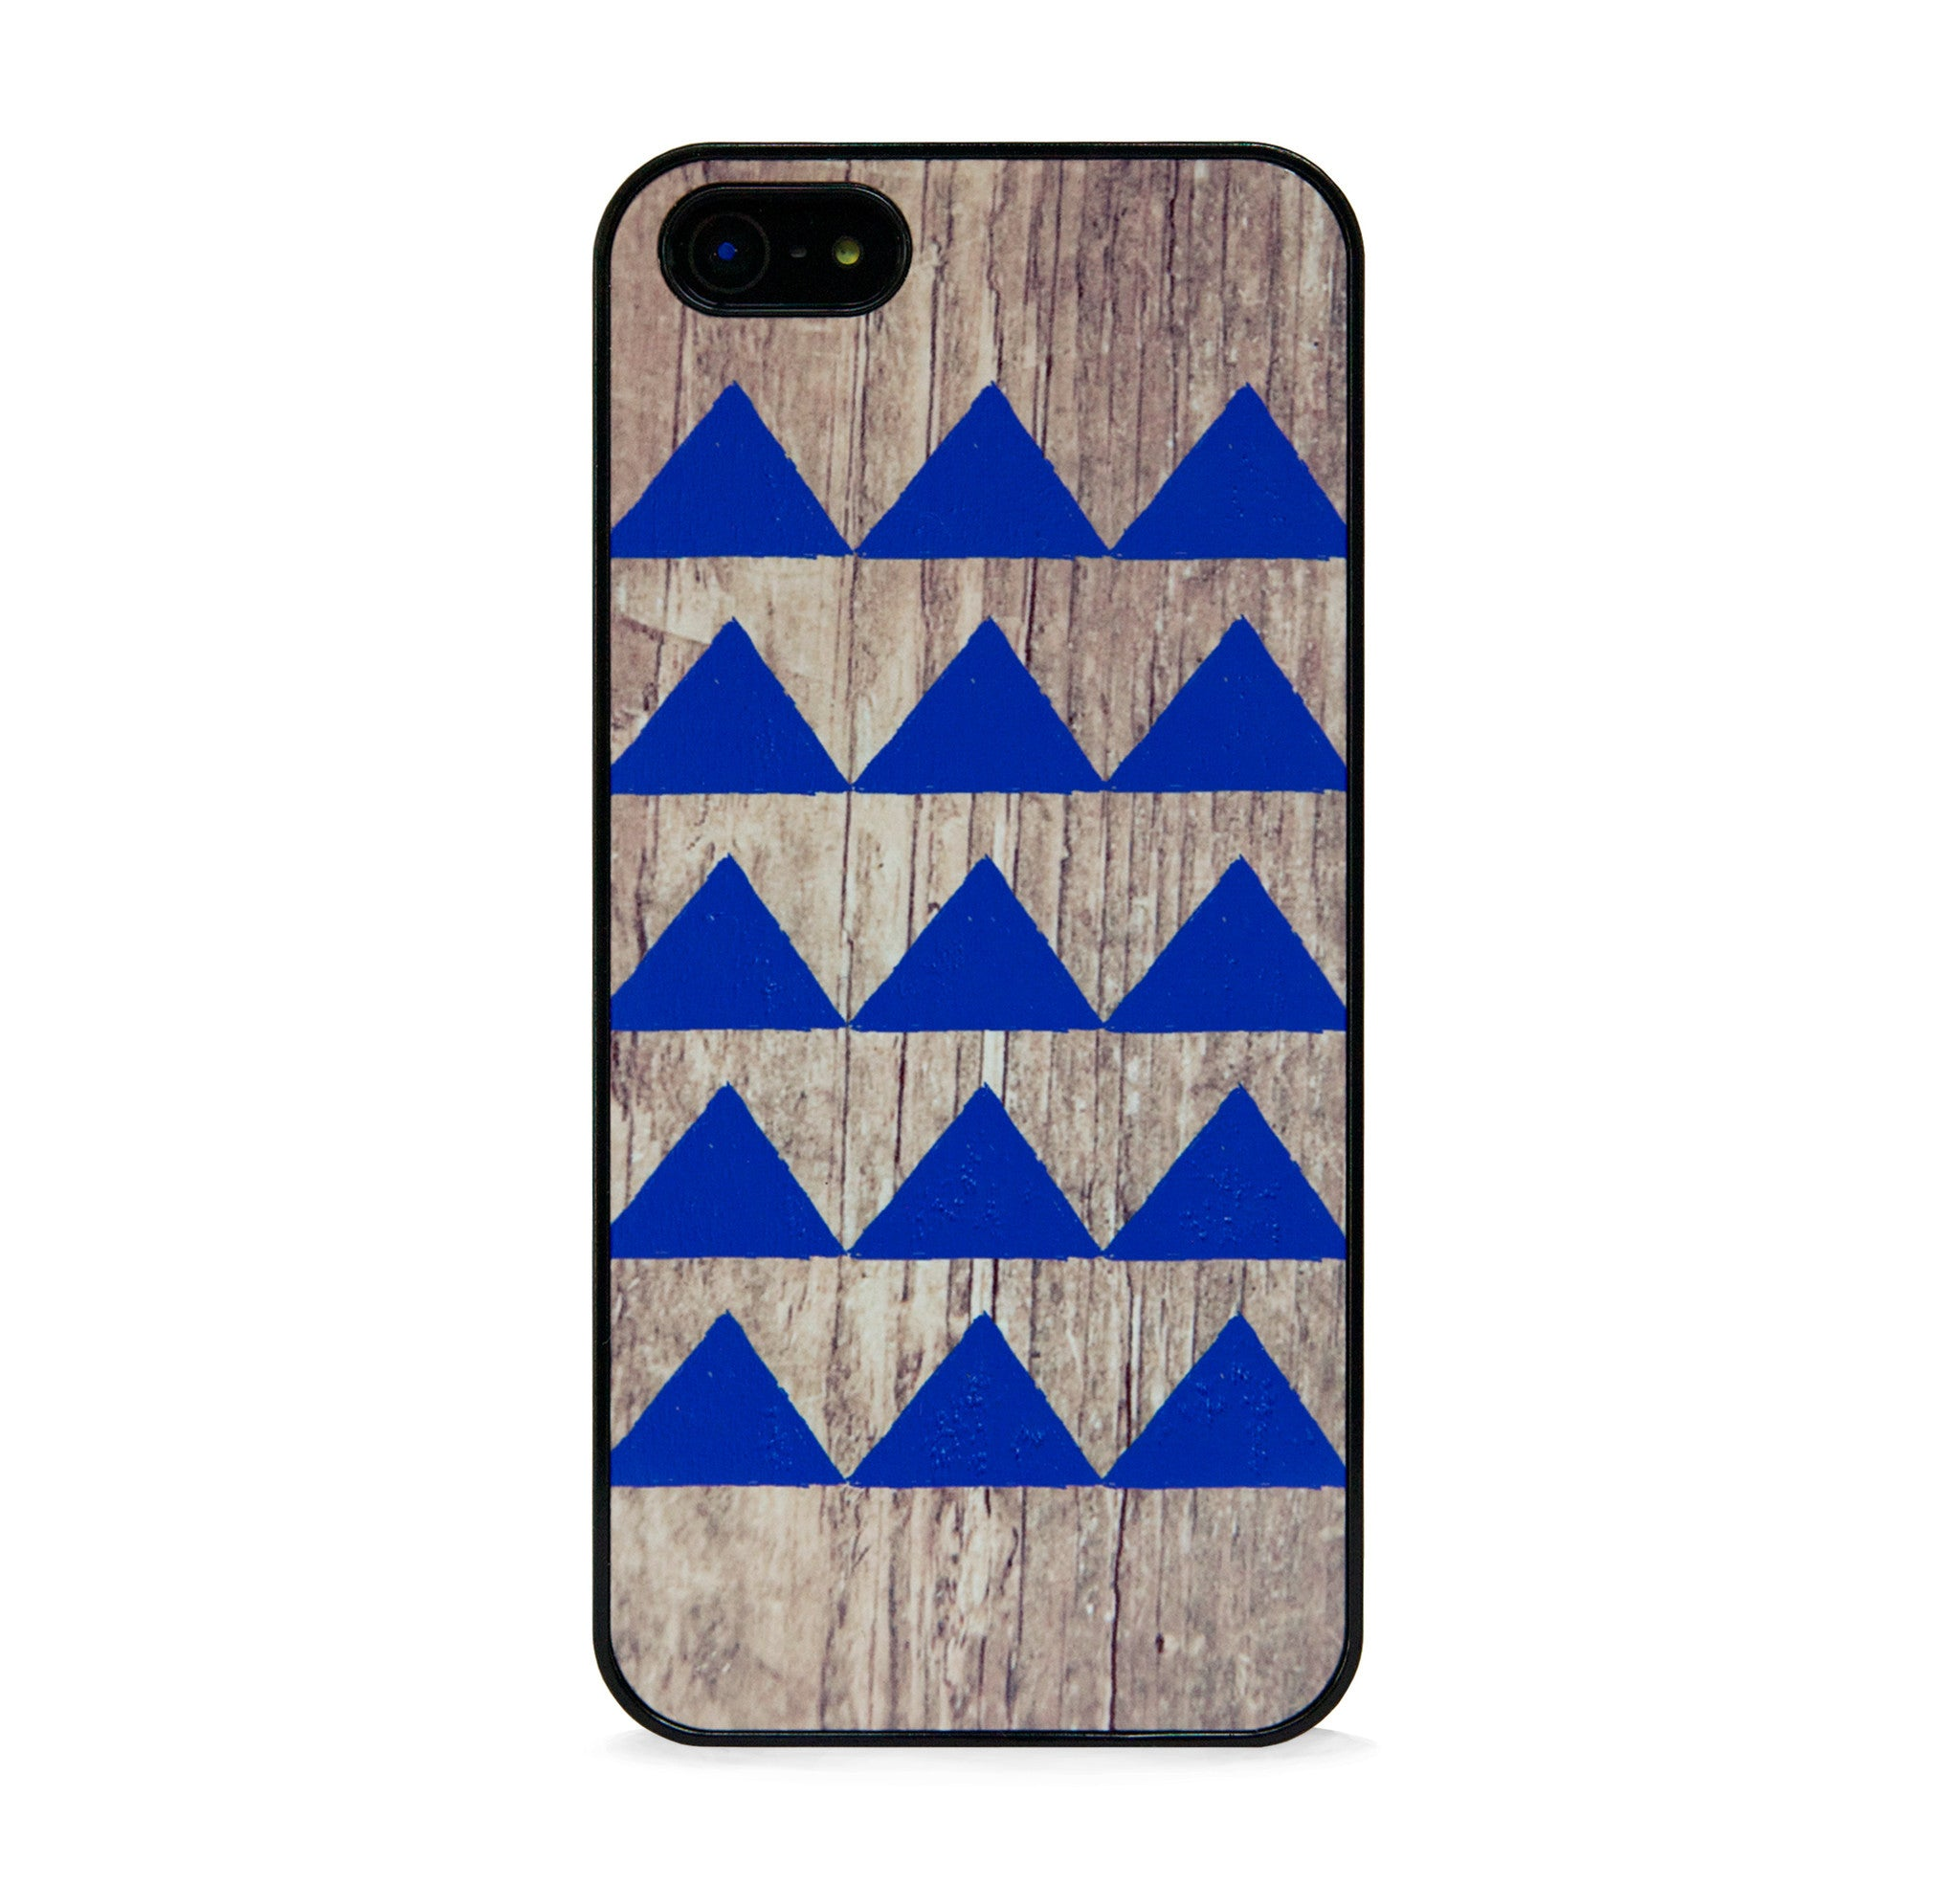 GEO WOOD TRIANGLE NAVY FOR IPHONE 5/5S, IPHONE SE